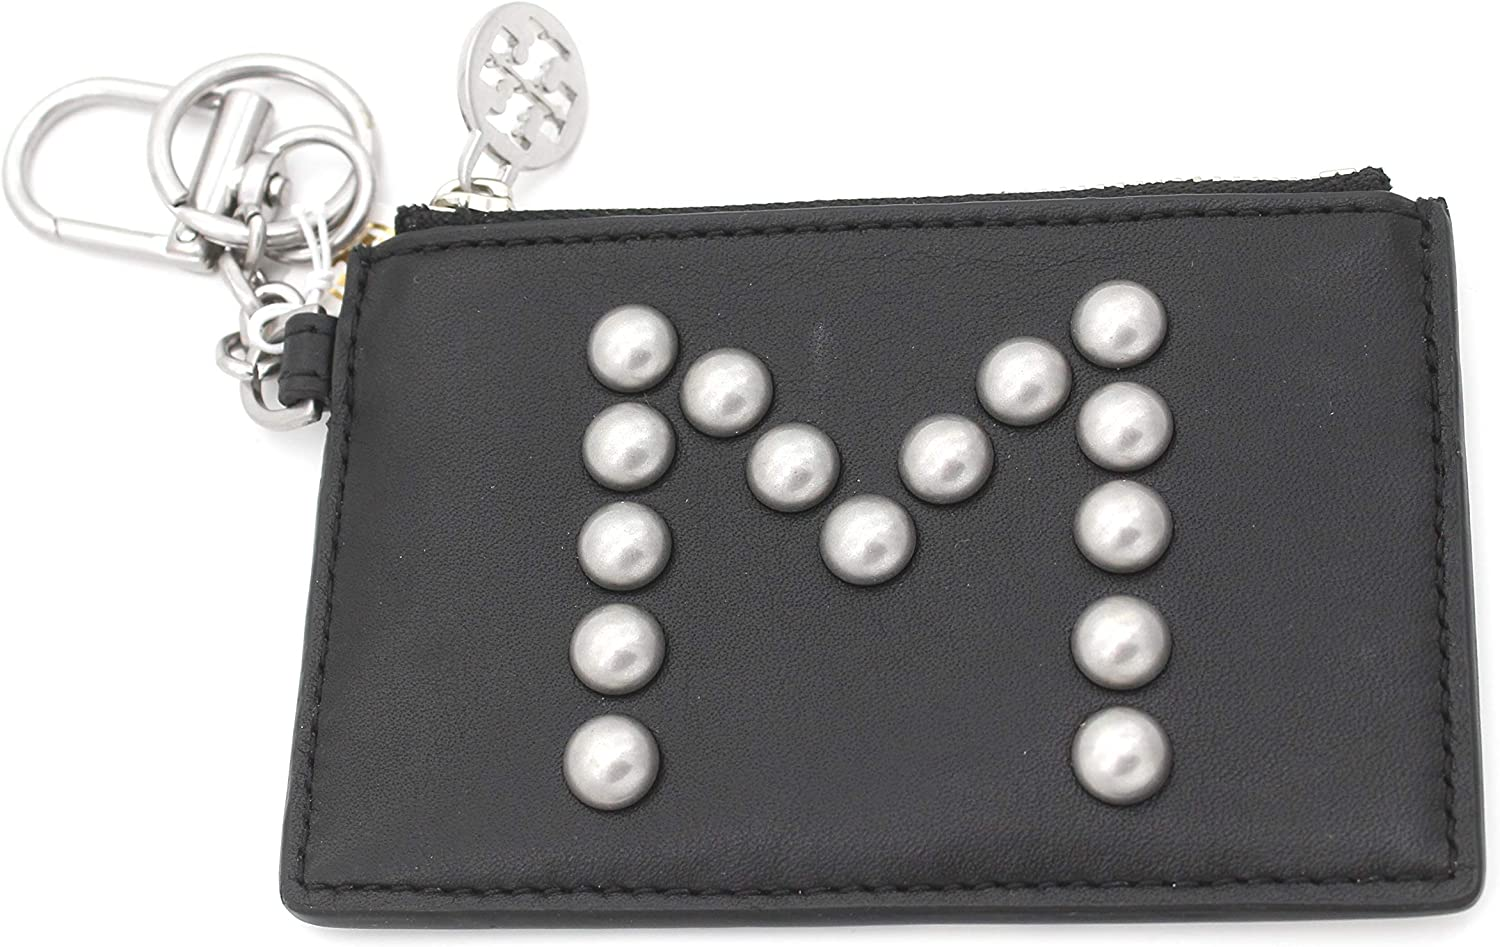 Studded Coin SEAL supreme limited product Purse Fob Black Key